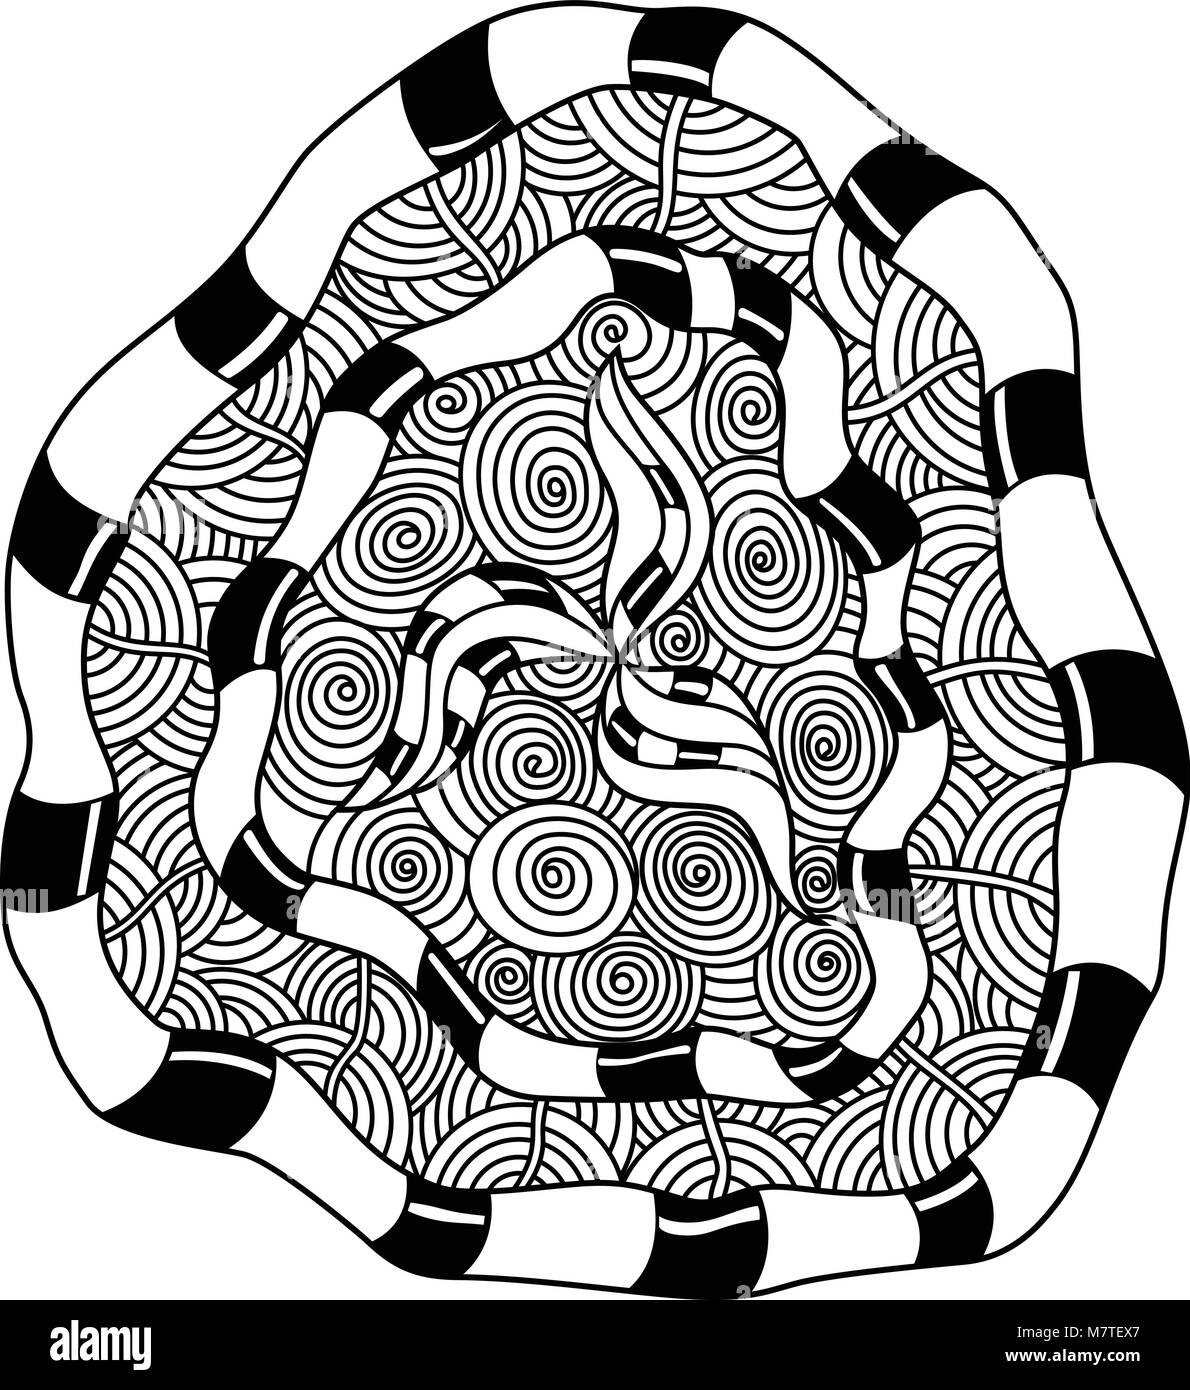 Decorative Hand Drawn Mandala Elements And Flowers Coloring Page